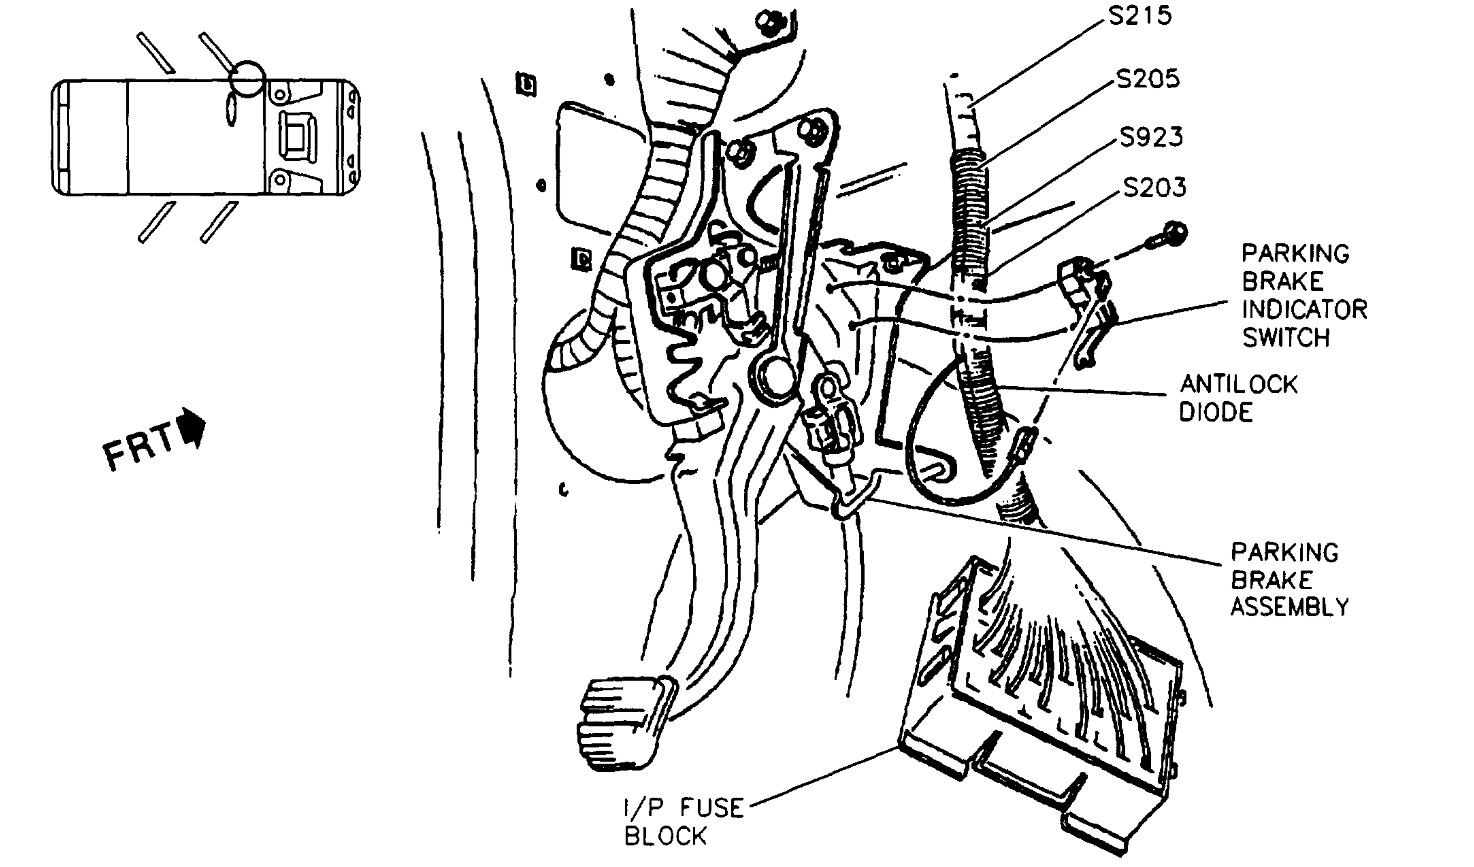 fuse box my car is used and the only owners manual with the car 2006 chevrolet cobalt fuse box diagram 1996 pontiac bonneville fuse box diagram #19